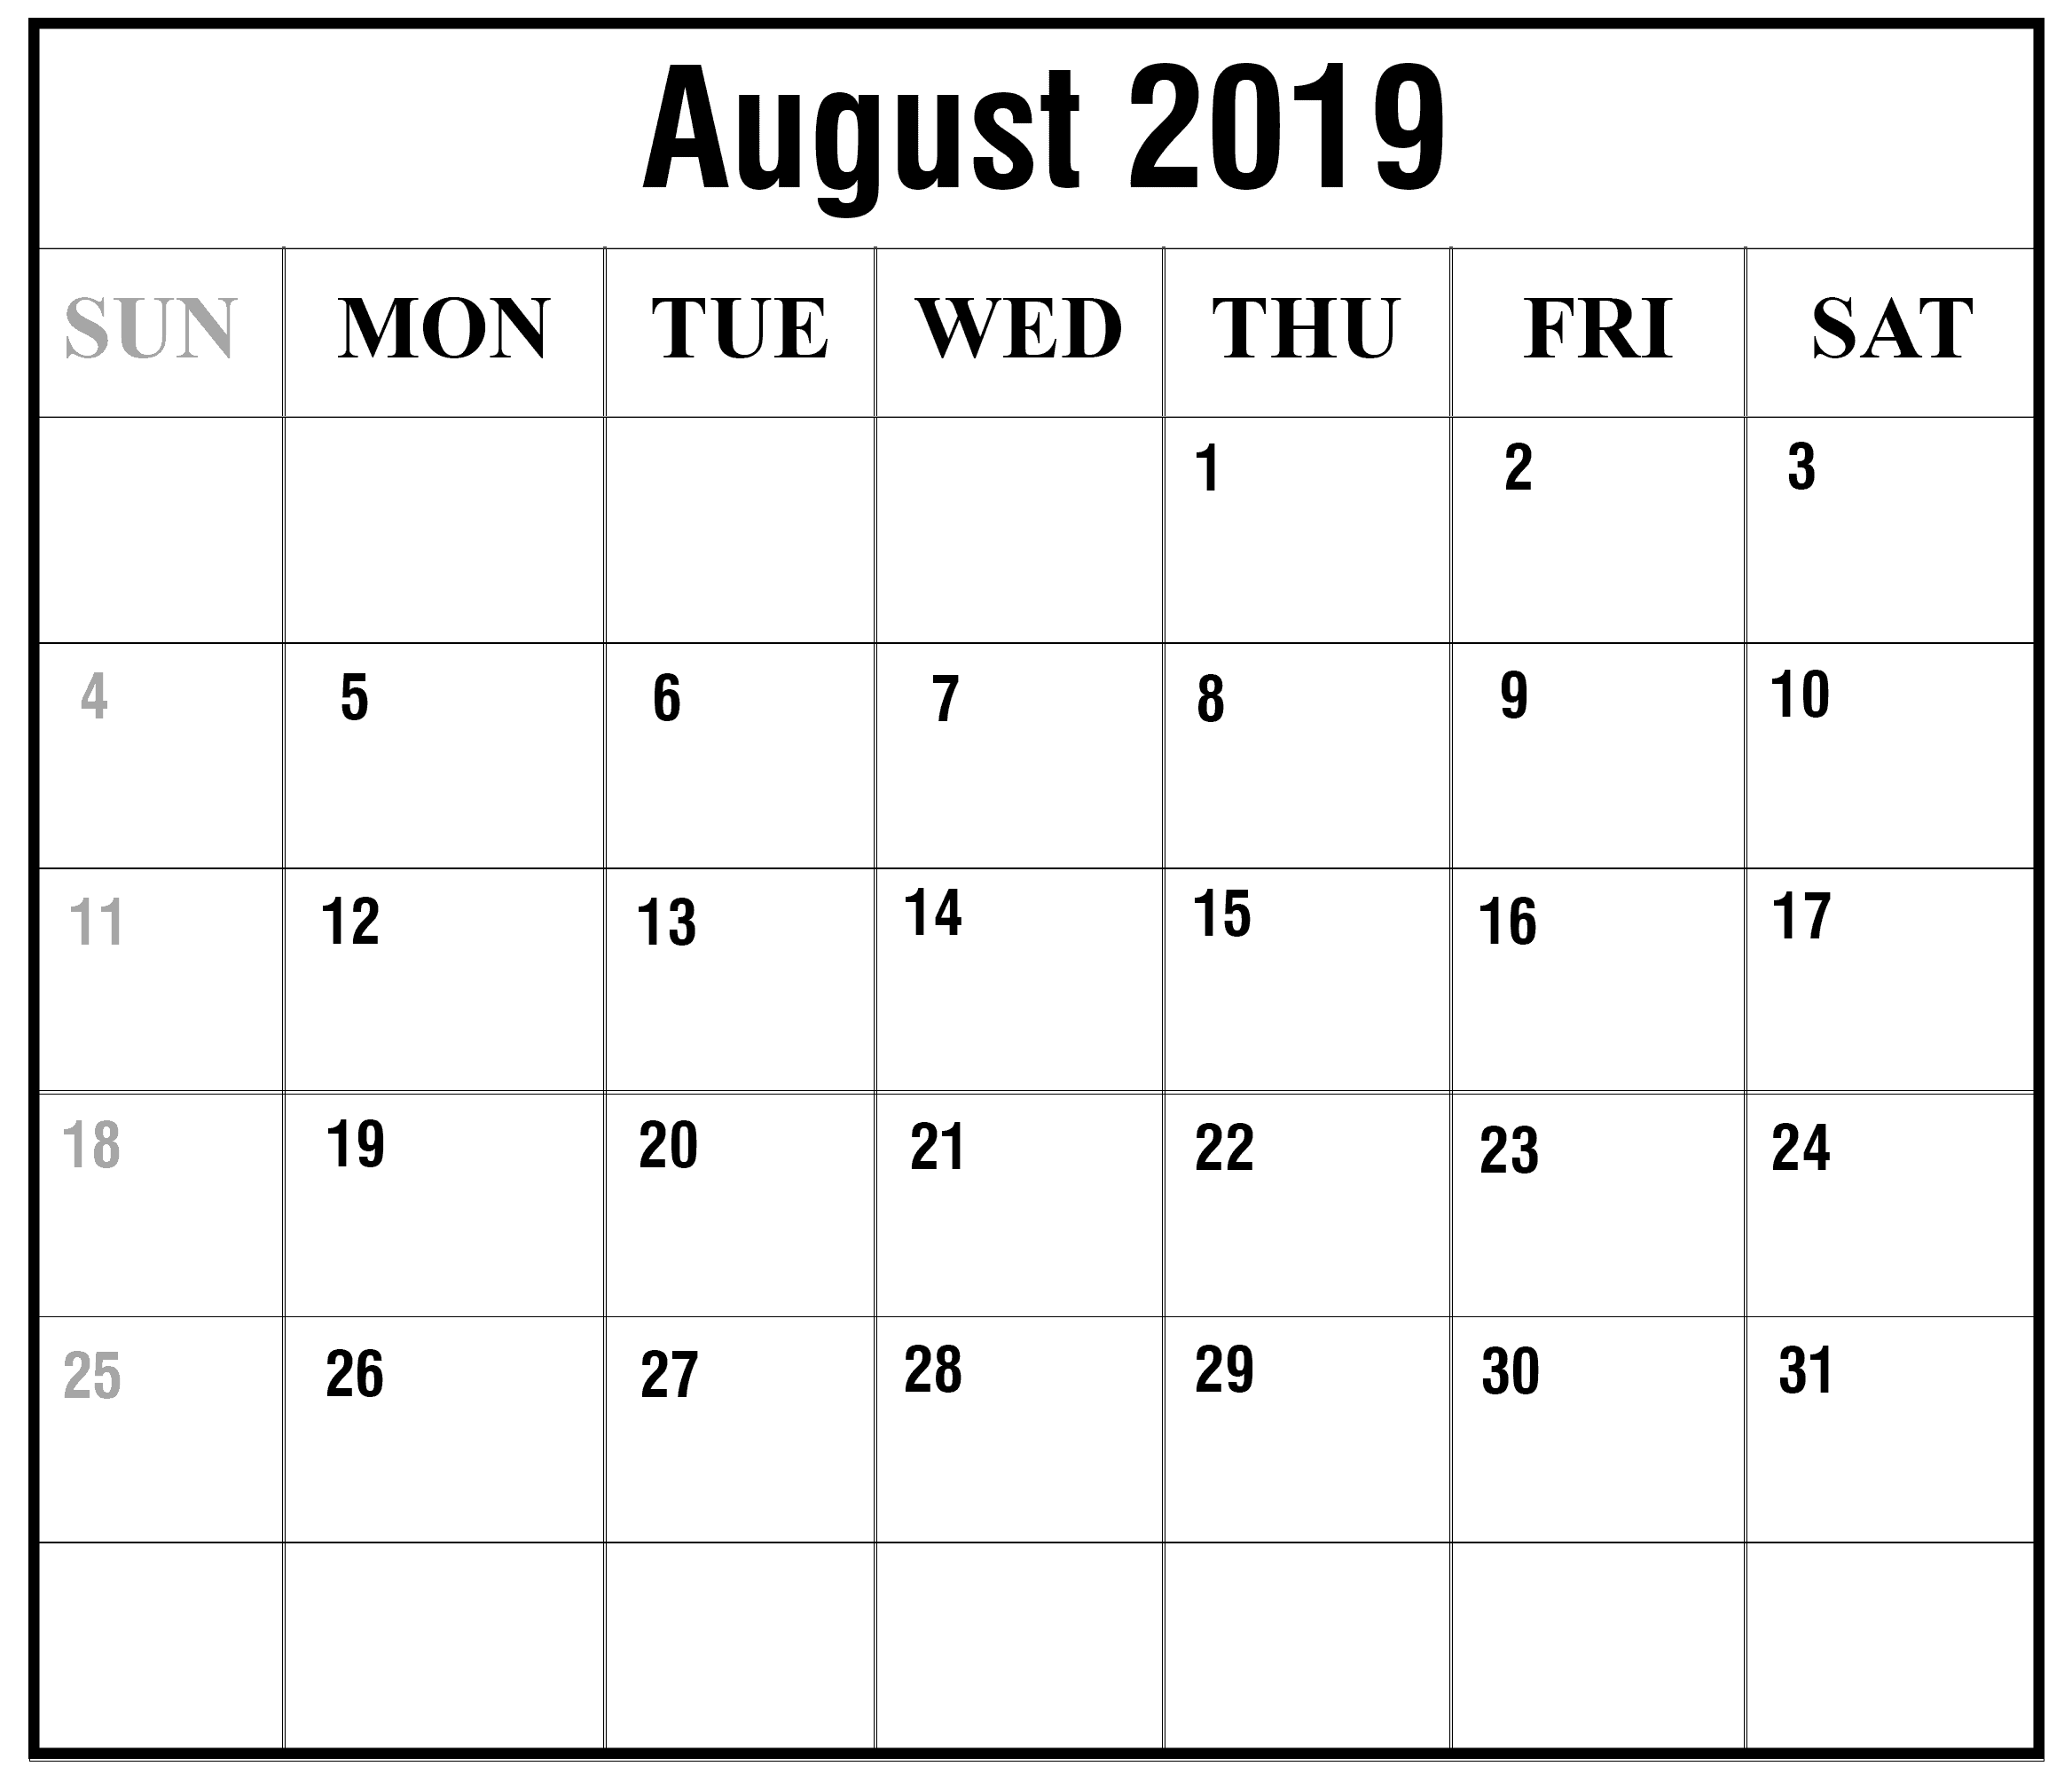 This is a graphic of Dashing August Printable Calendars